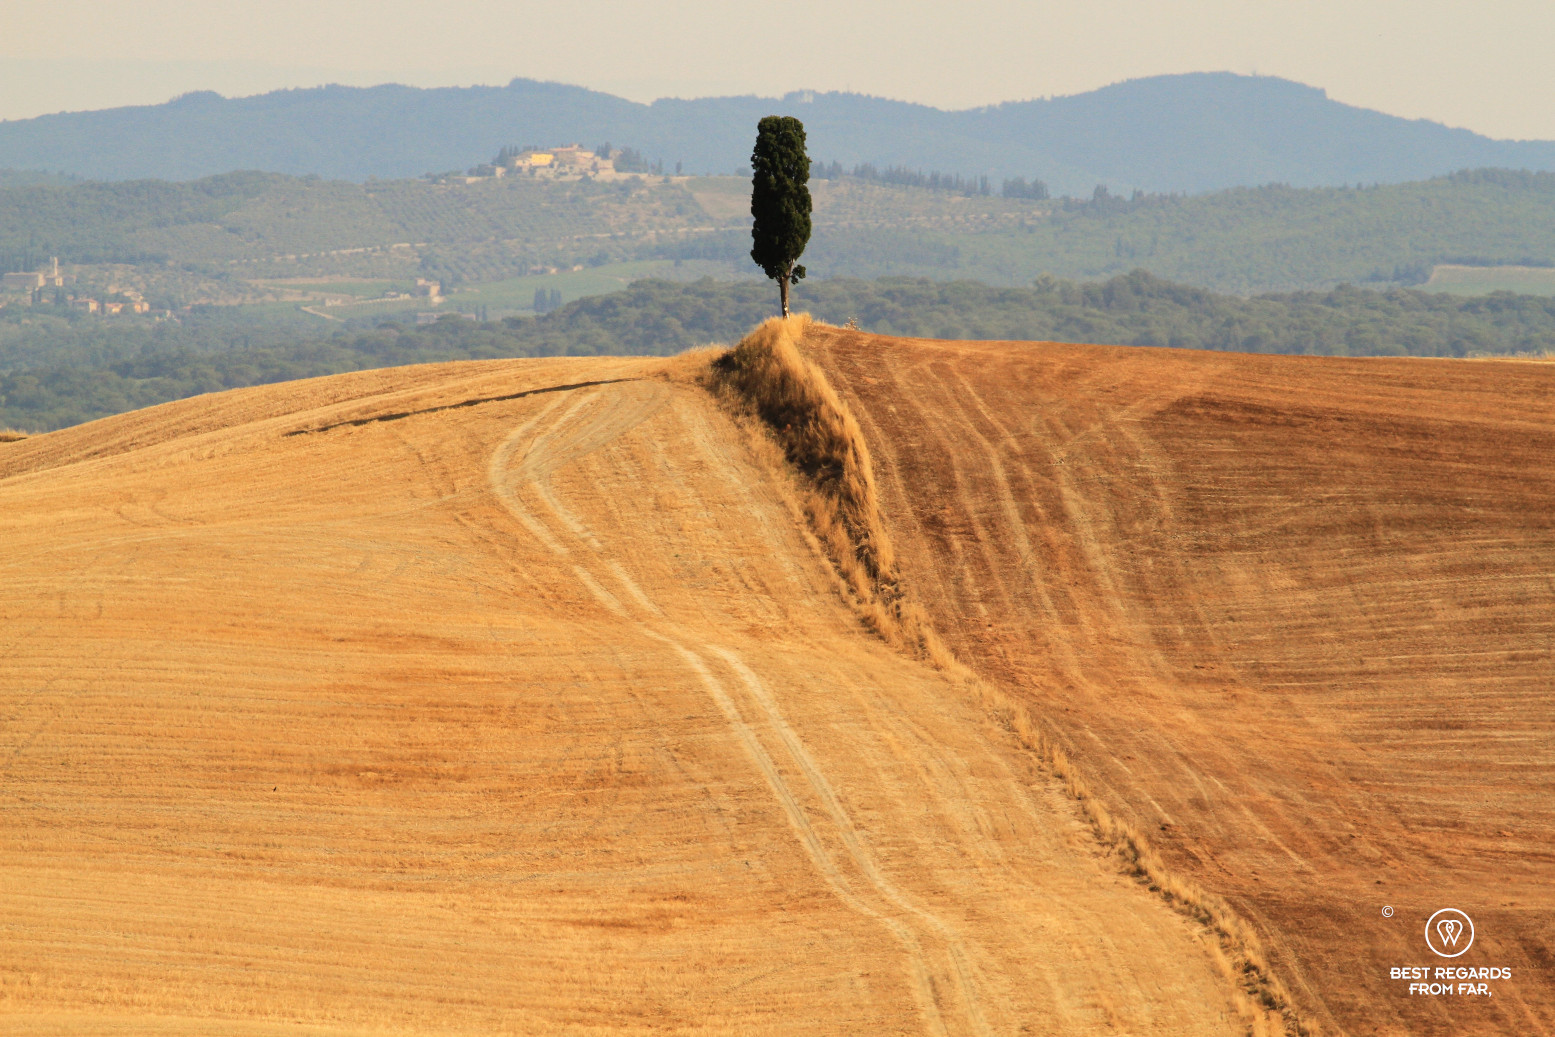 A tree in the middle of two wheat fields in Tuscany, Italy